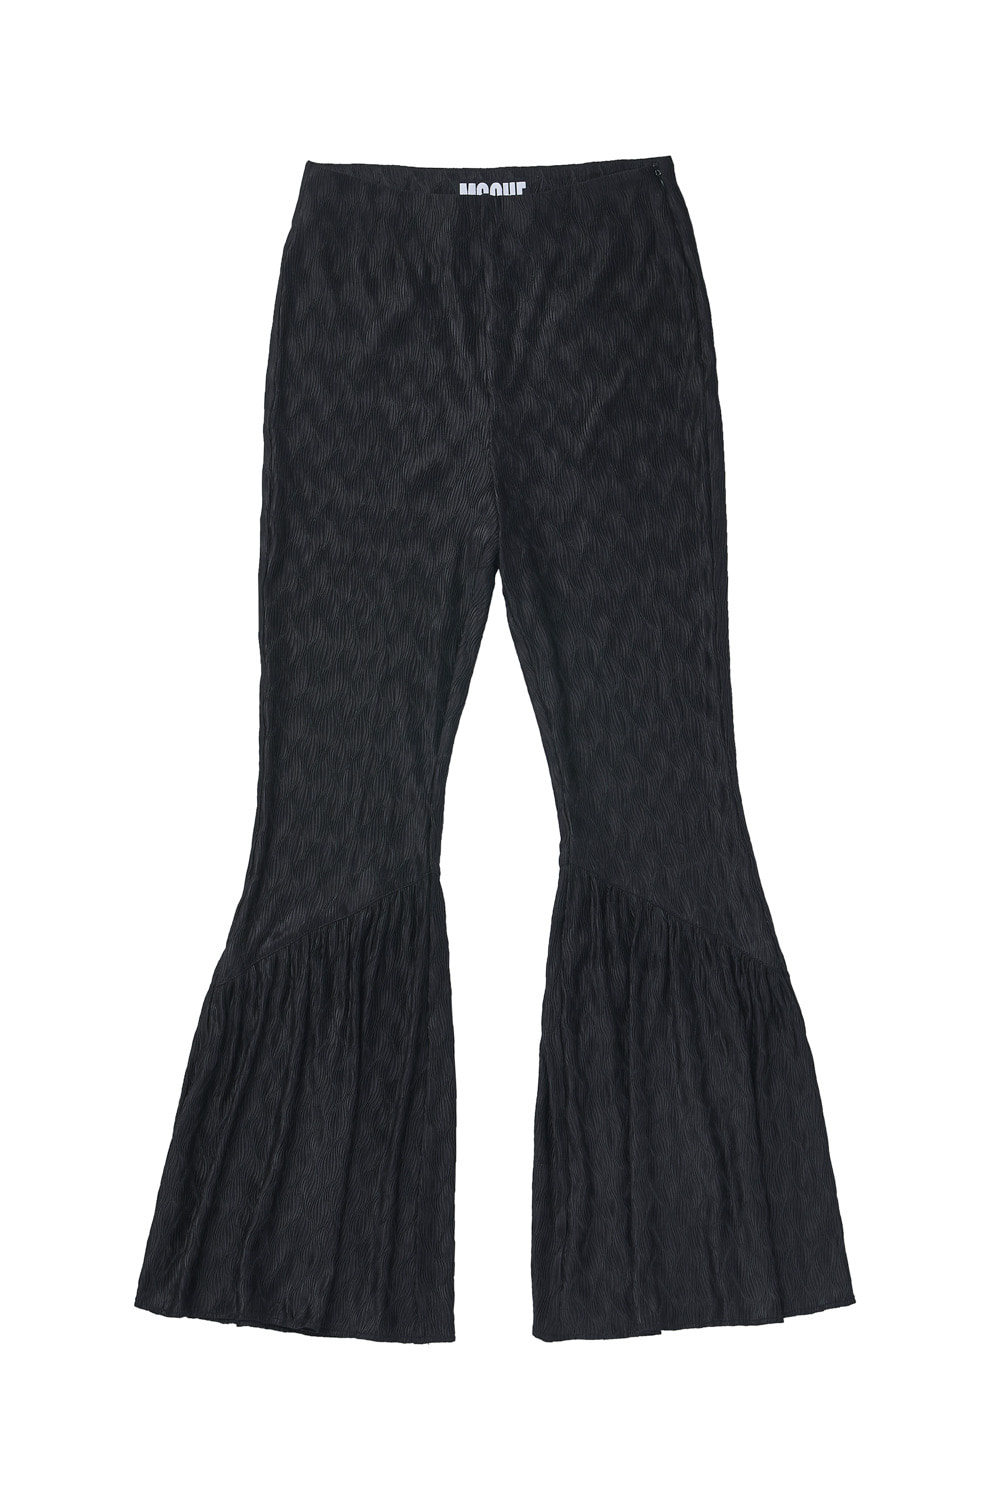 PLEATED BOOTCUT PANTS_black